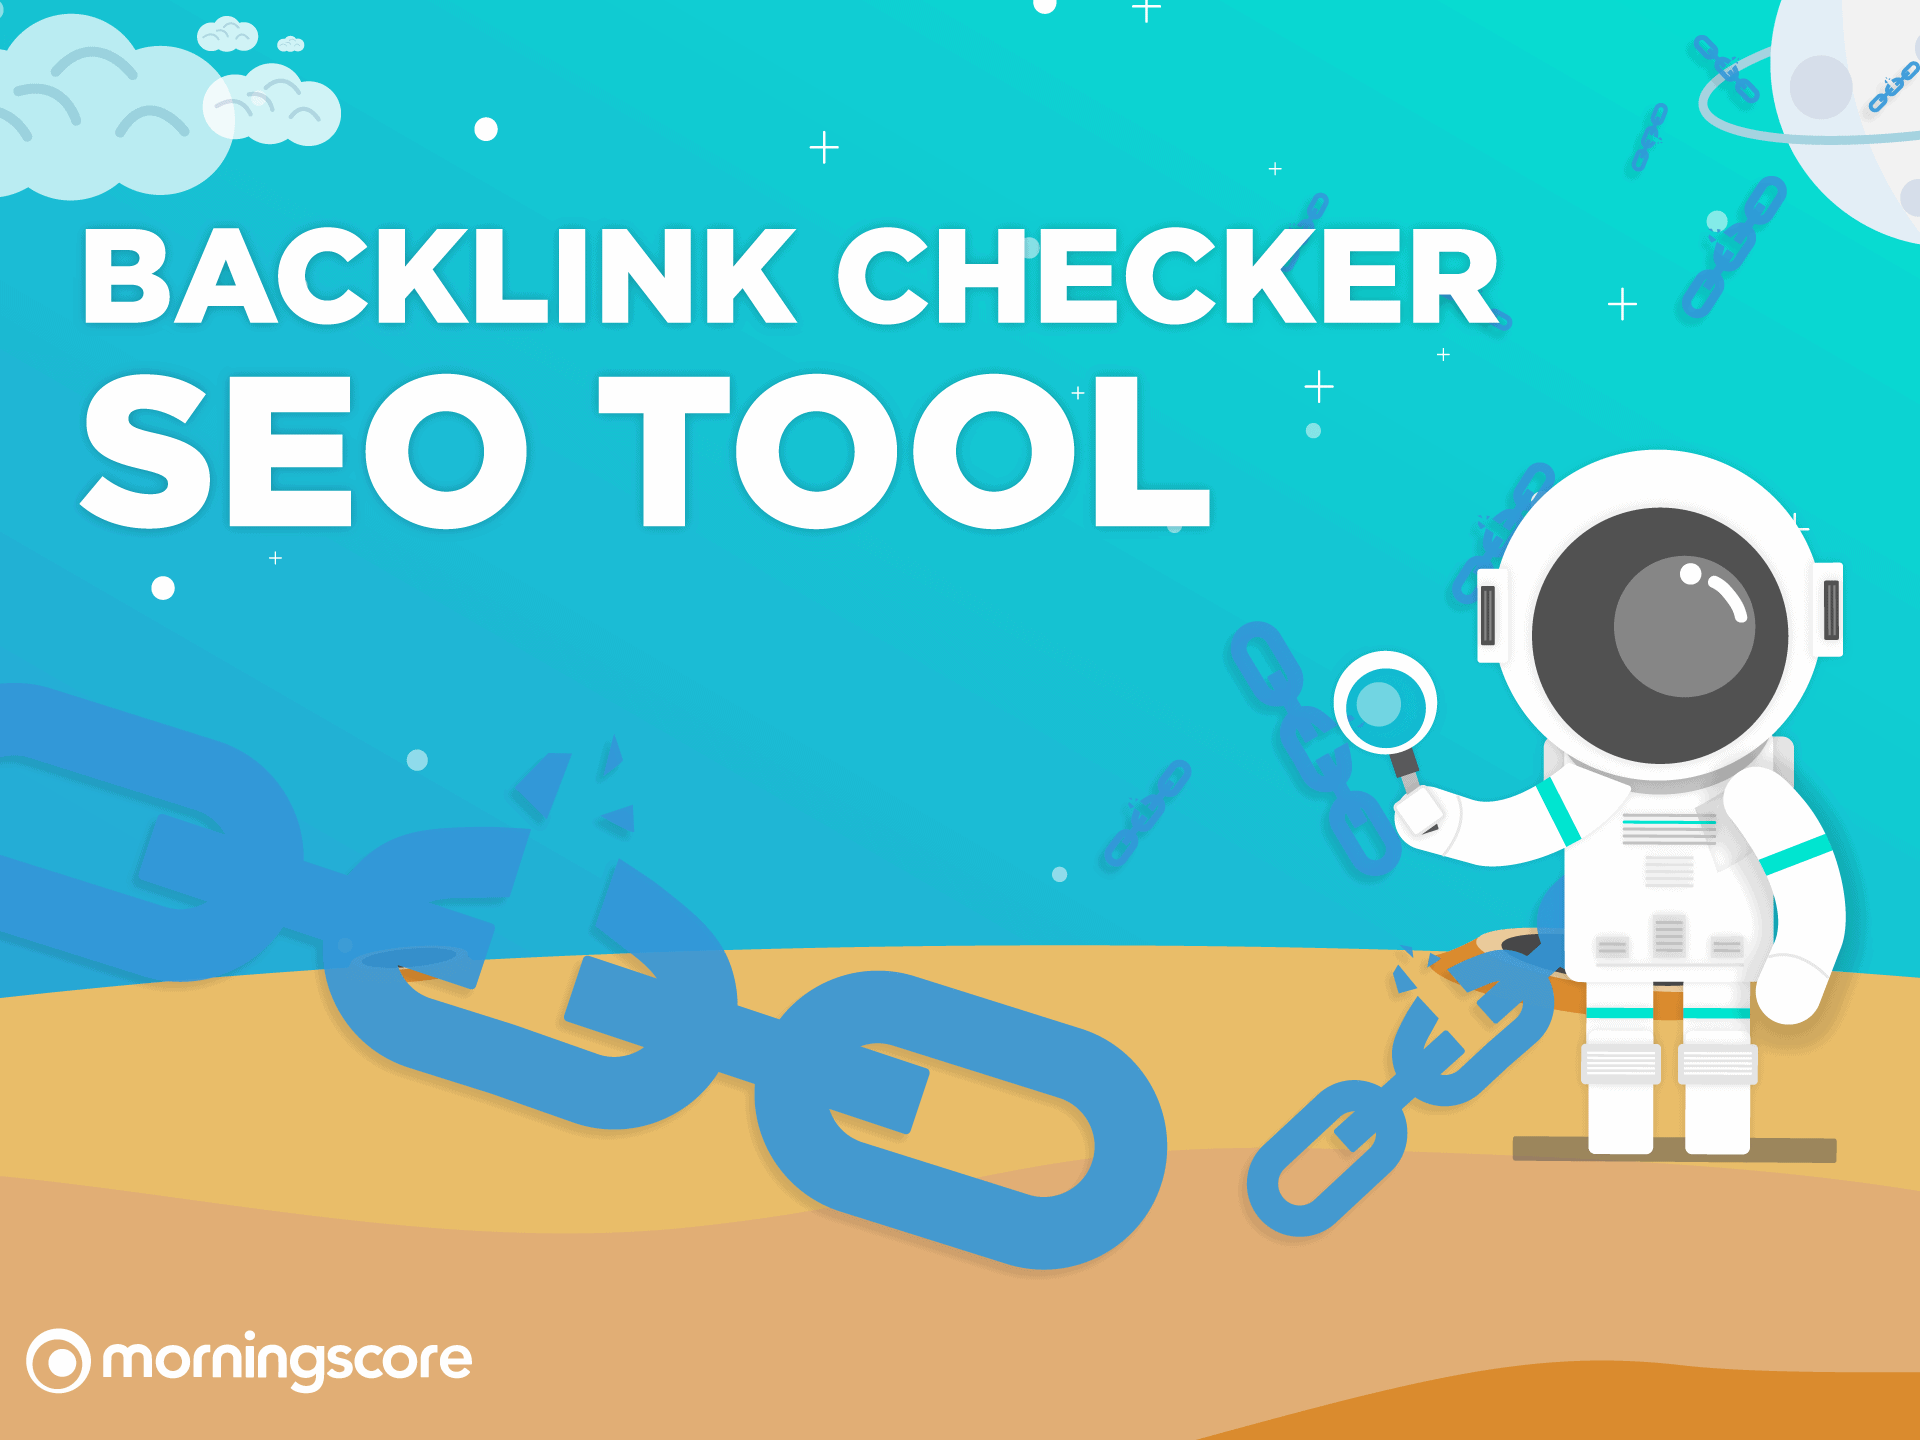 Morningscore All-In-One SEO tool including a Backlink Checker tool